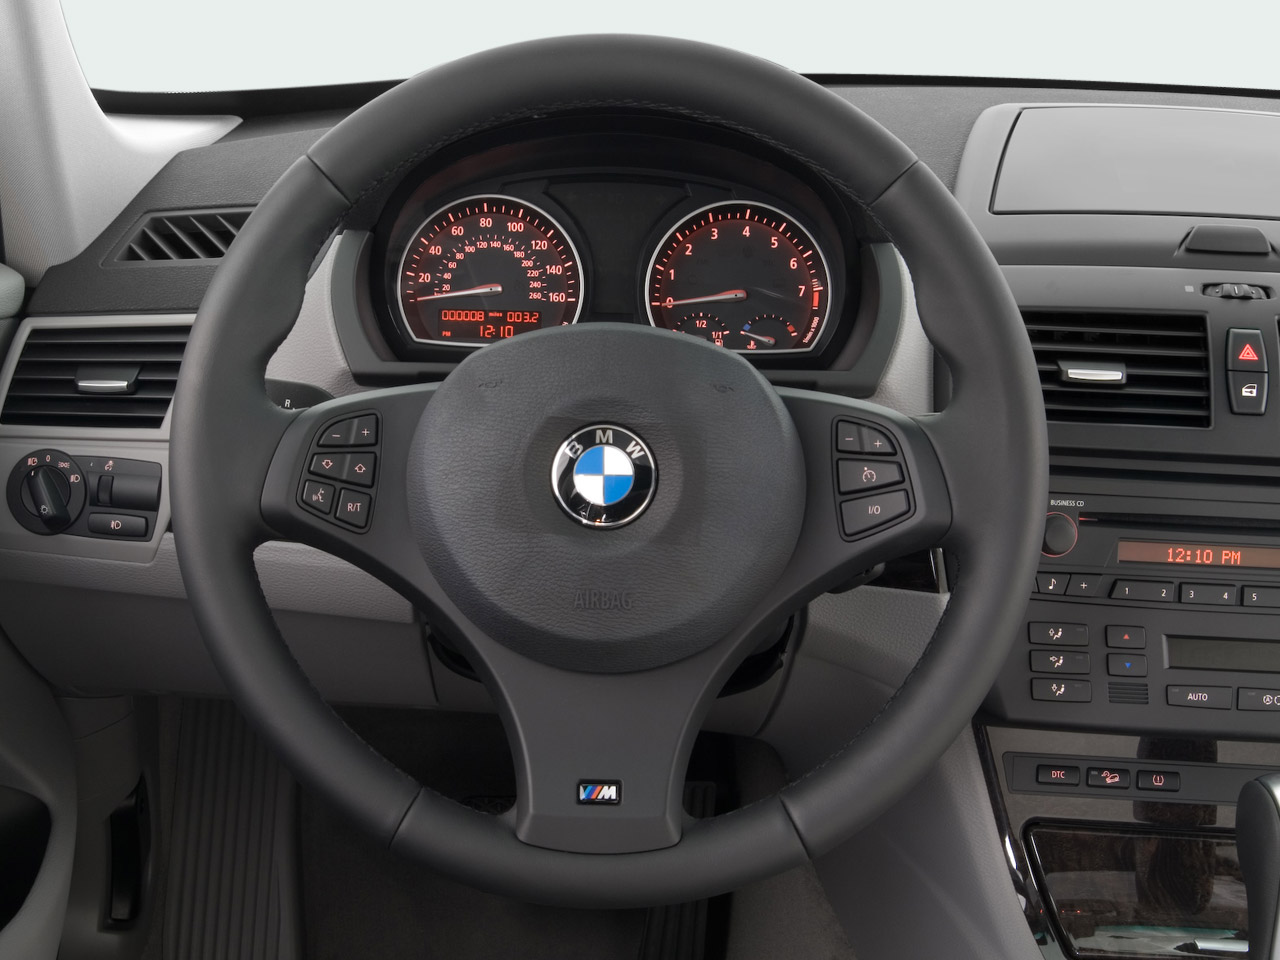 2007 BMW X3 - New and Future Cars, Trucks, and SUVs - Automobile ...